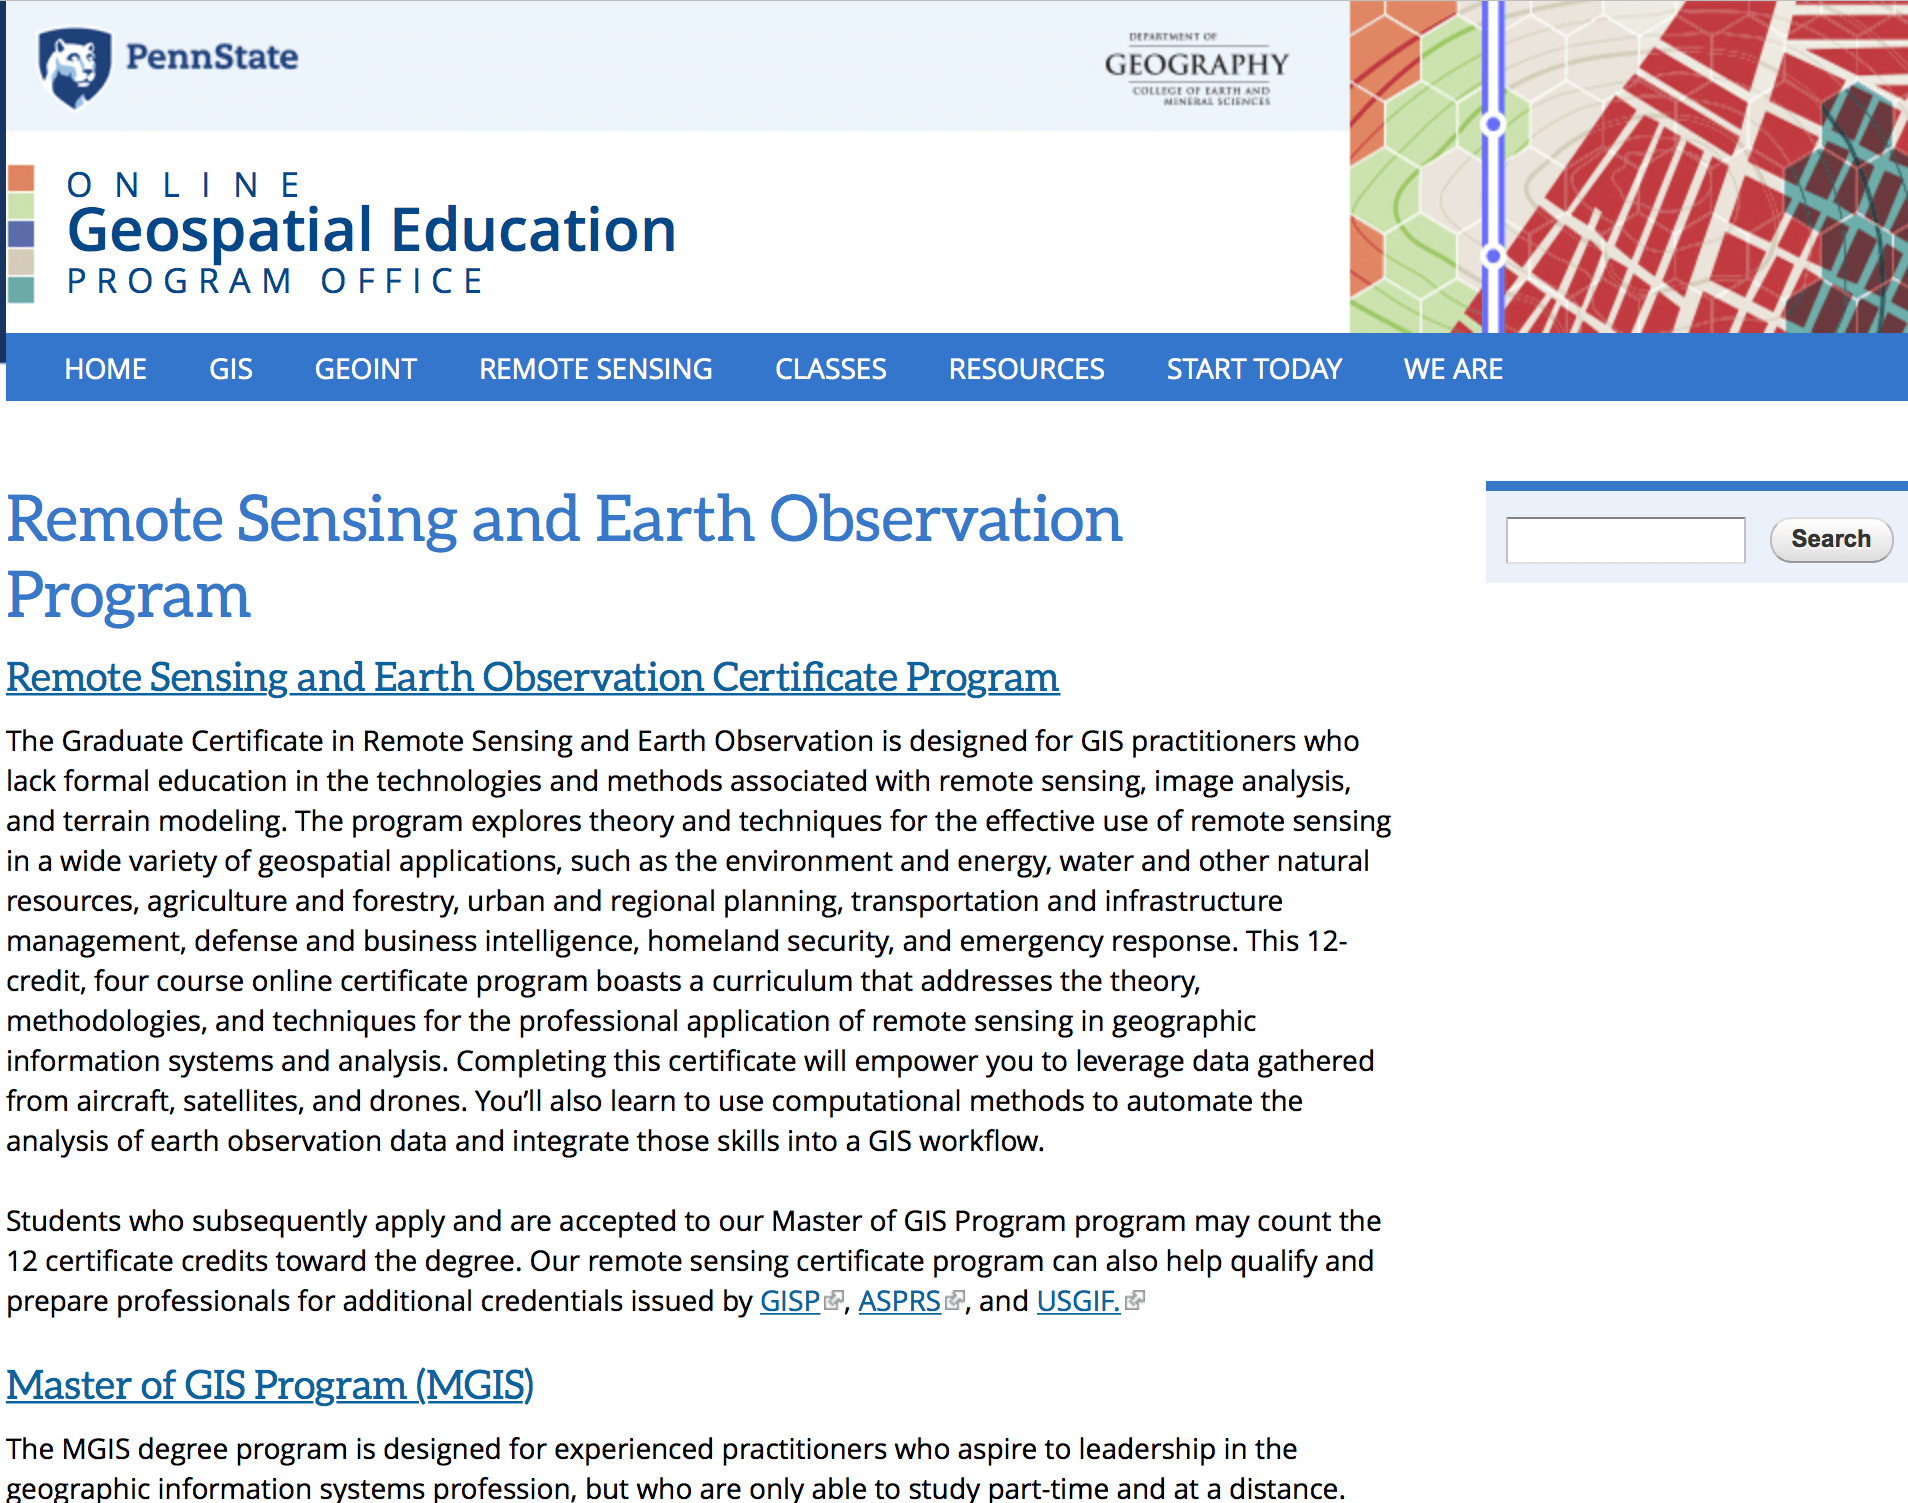 Penn state offers online earth observation education earth penn state offers online earth observation education earth imaging journal remote sensing satellite images satellite imagery 1betcityfo Choice Image